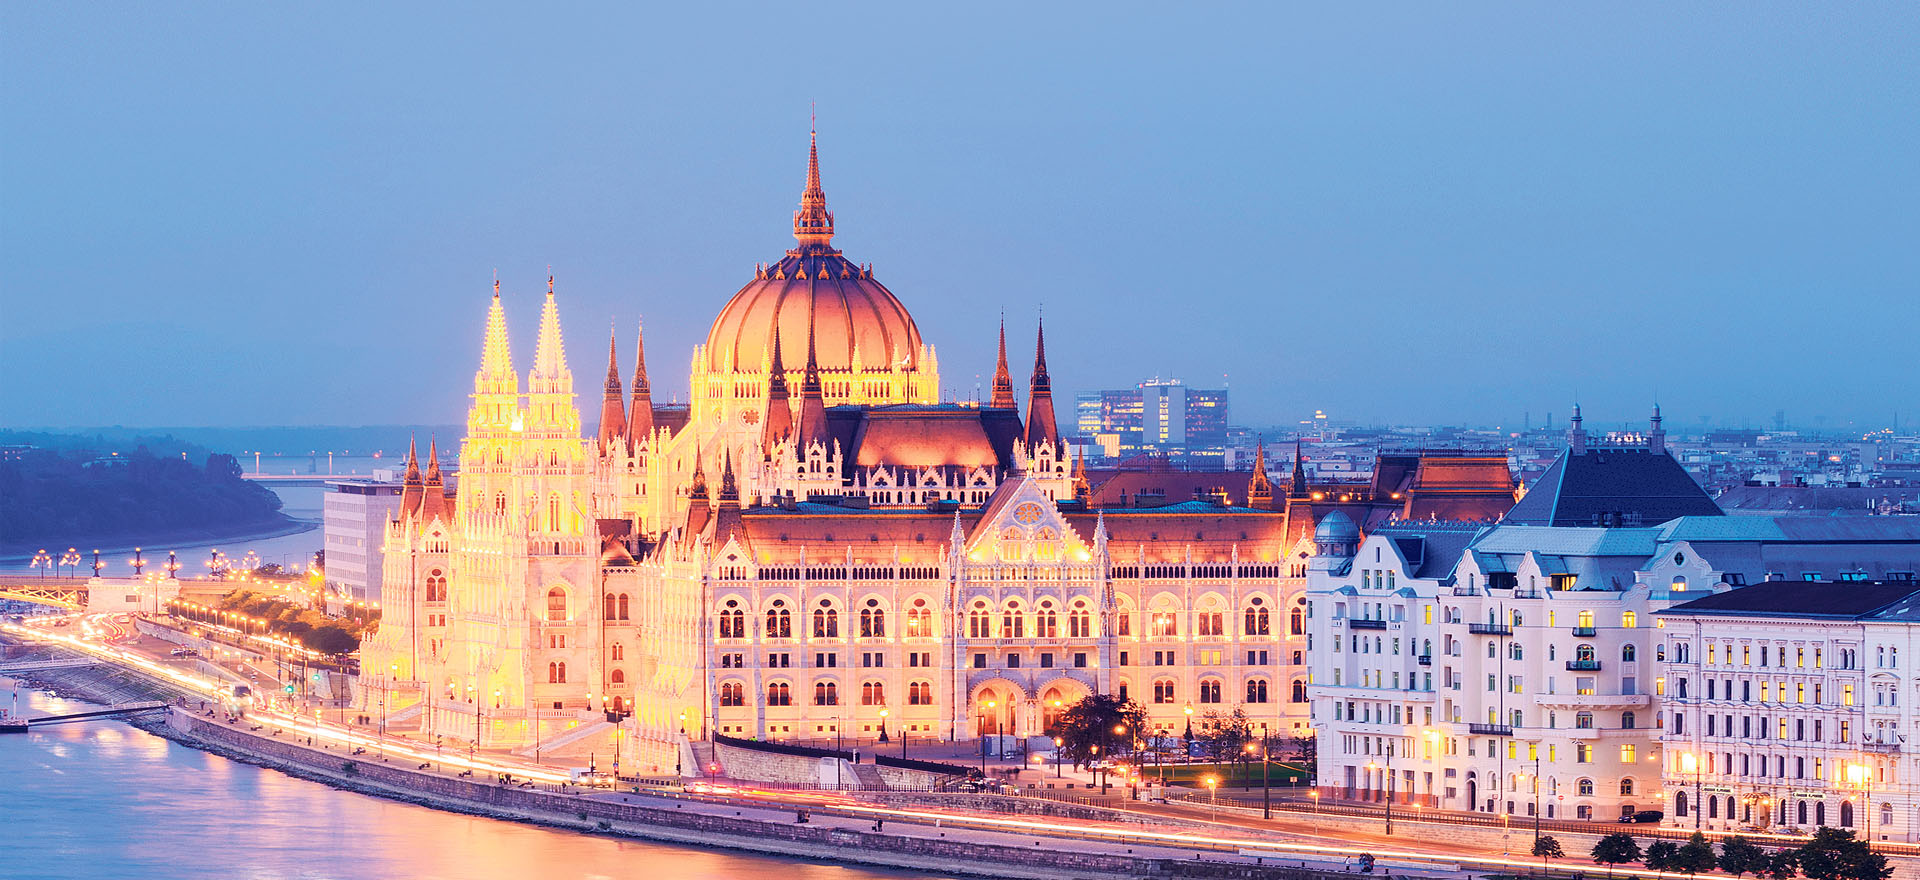 Hungarian Parliament Building evening lights